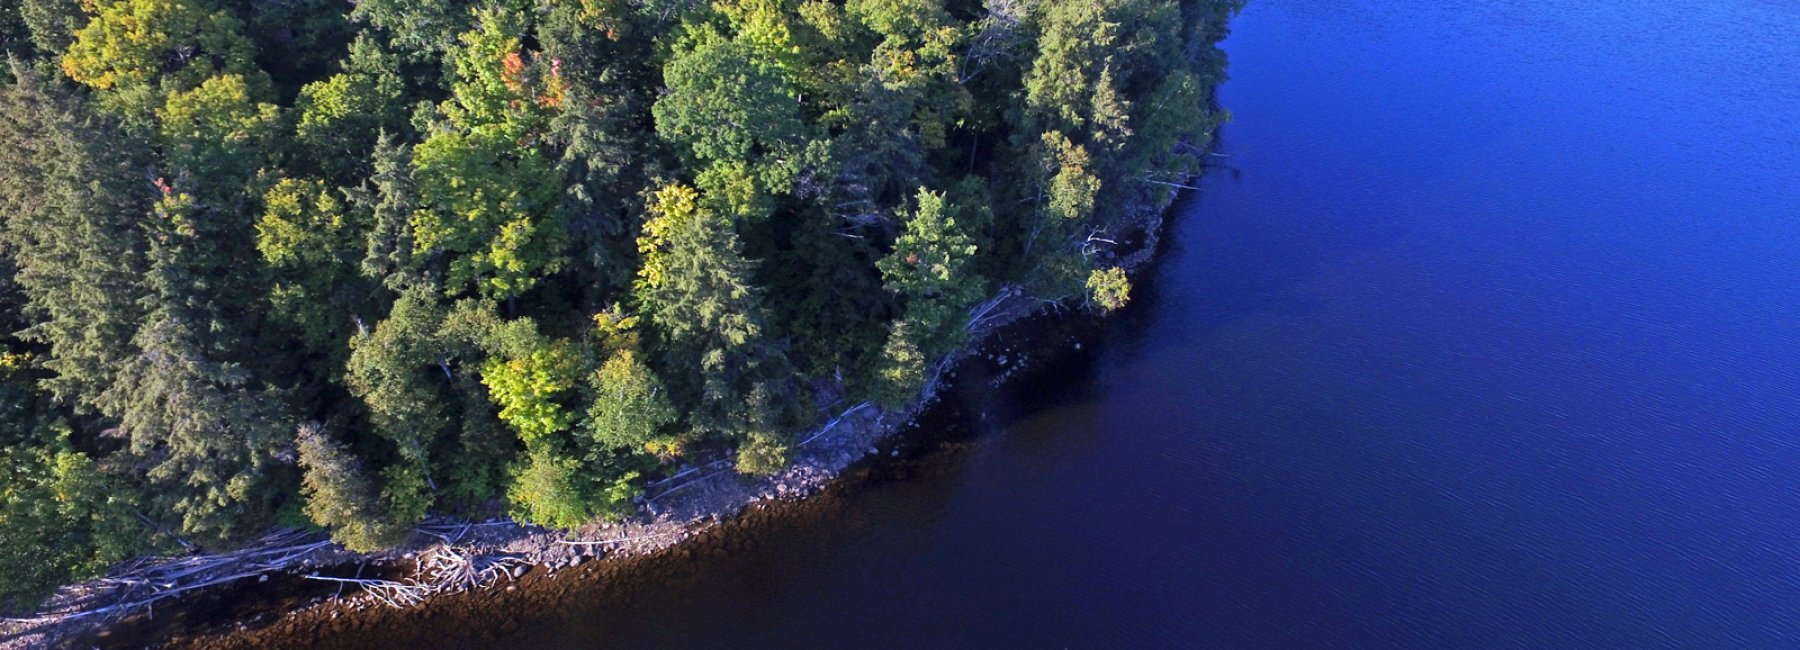 Lot 26, Flatwater Cove Road, Haliburton - Percy Lake